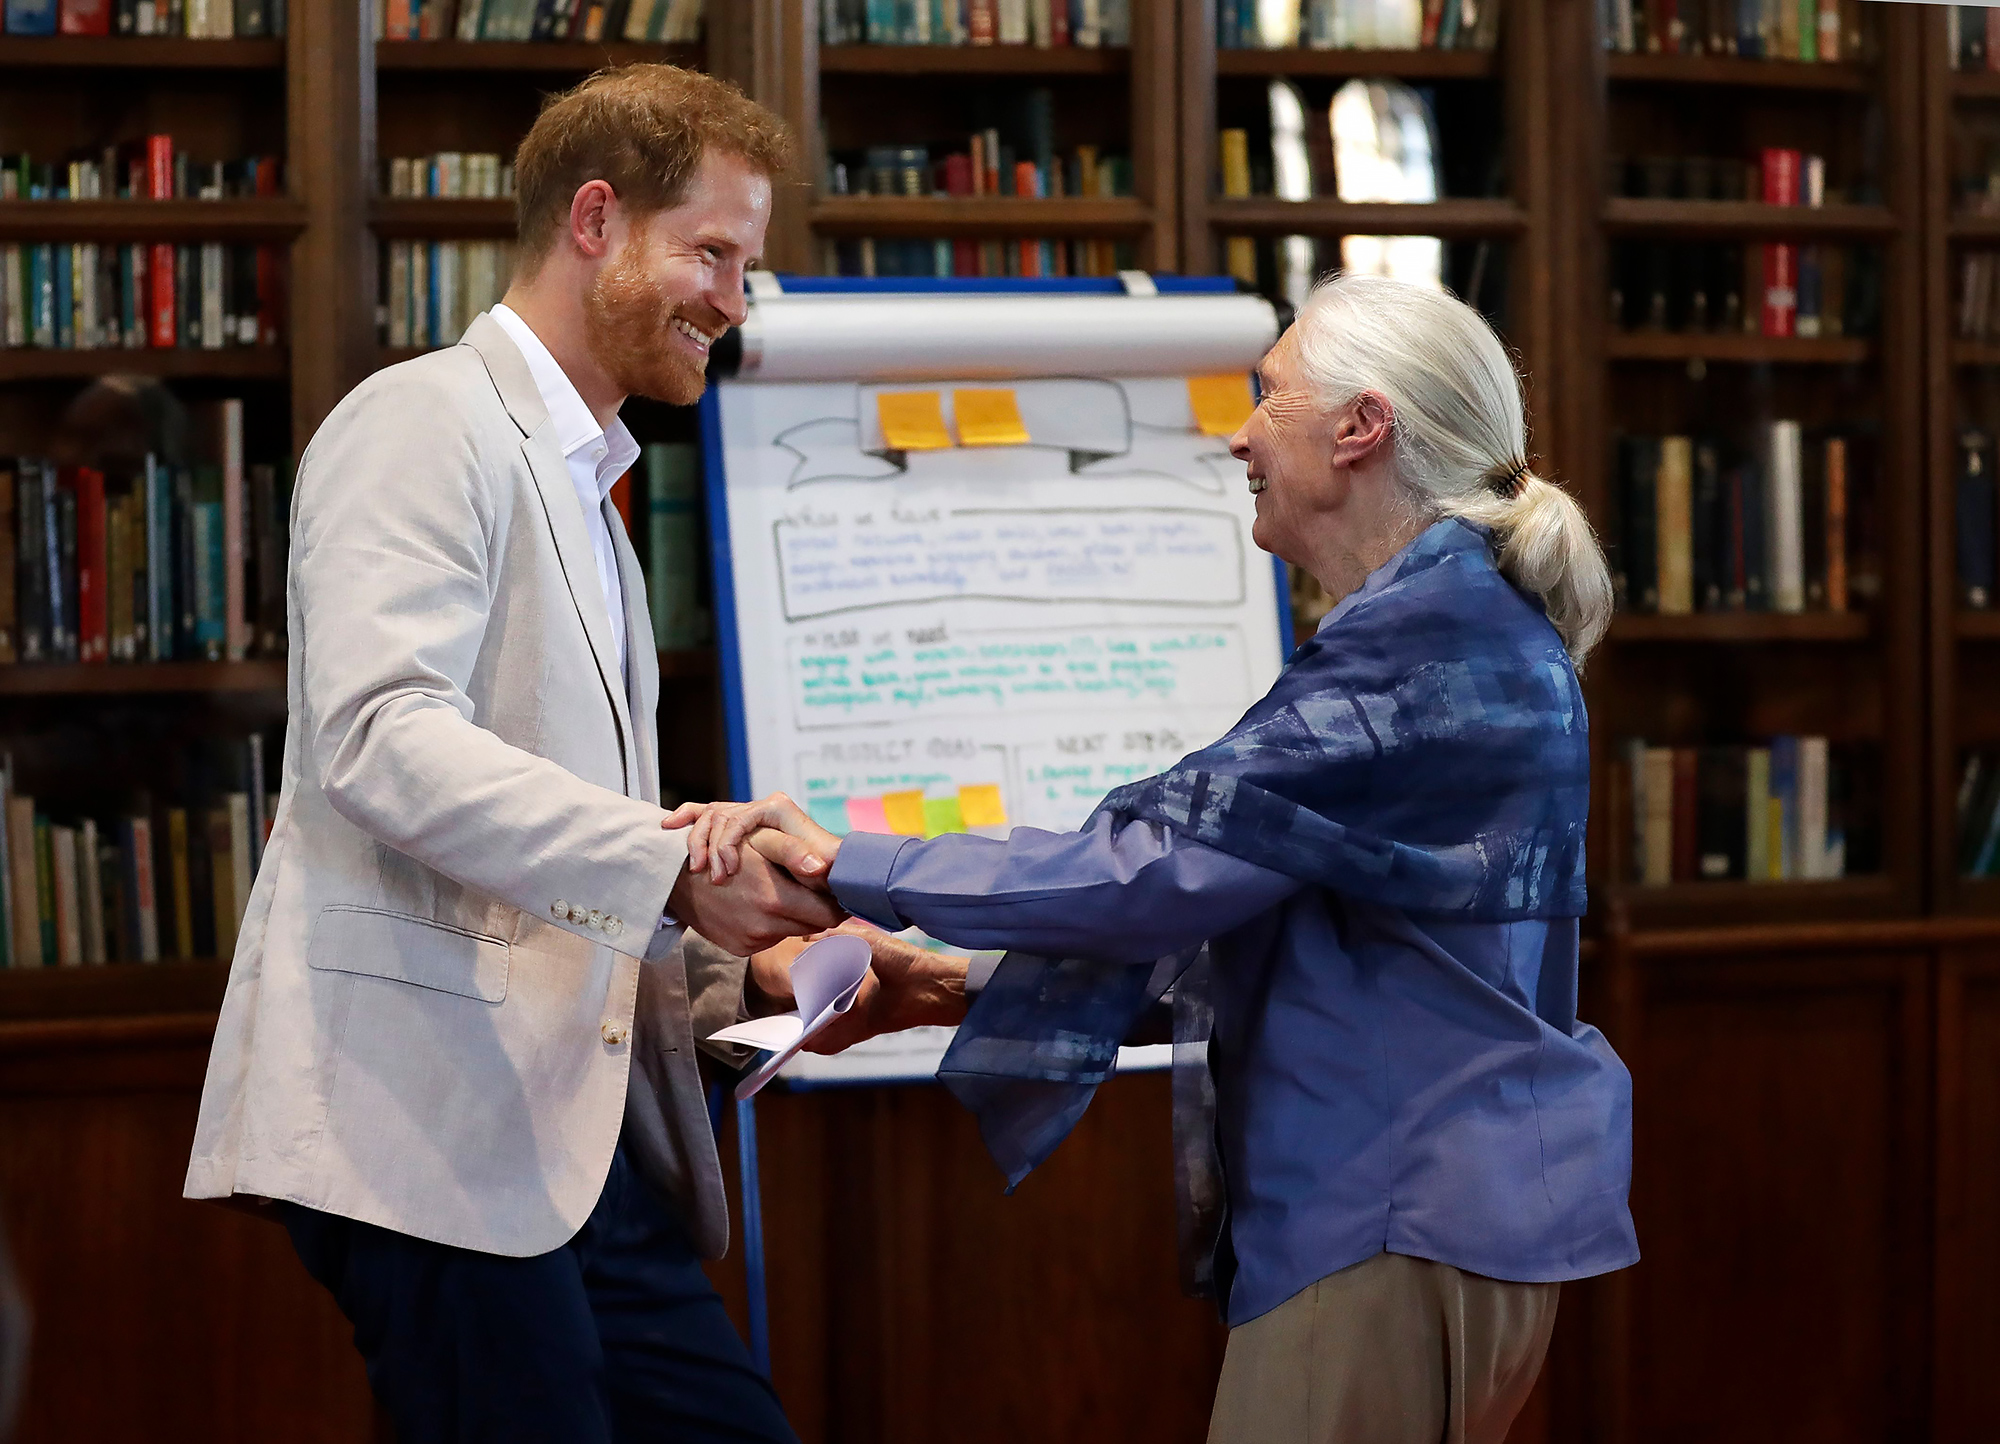 Prince Harry Is Finding Life a Bit Challenging in Los Angeles Jane Goodall p